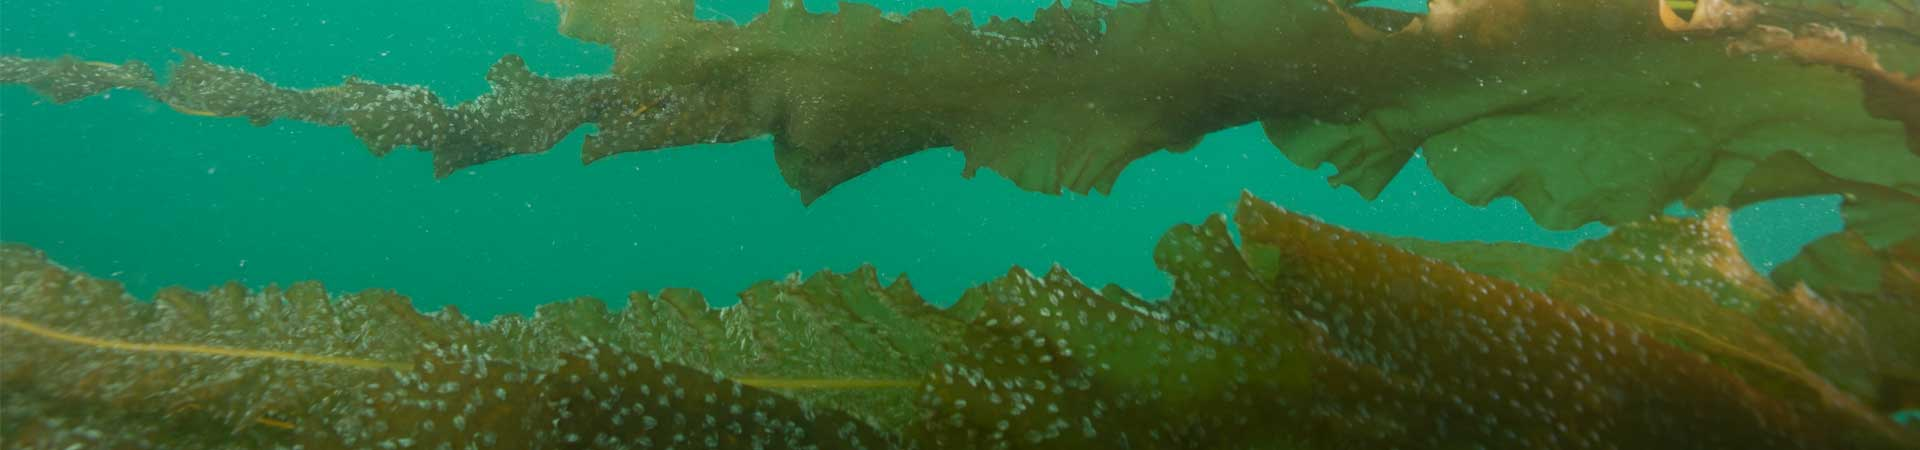 diver photo showing the seaweed farm below water surface